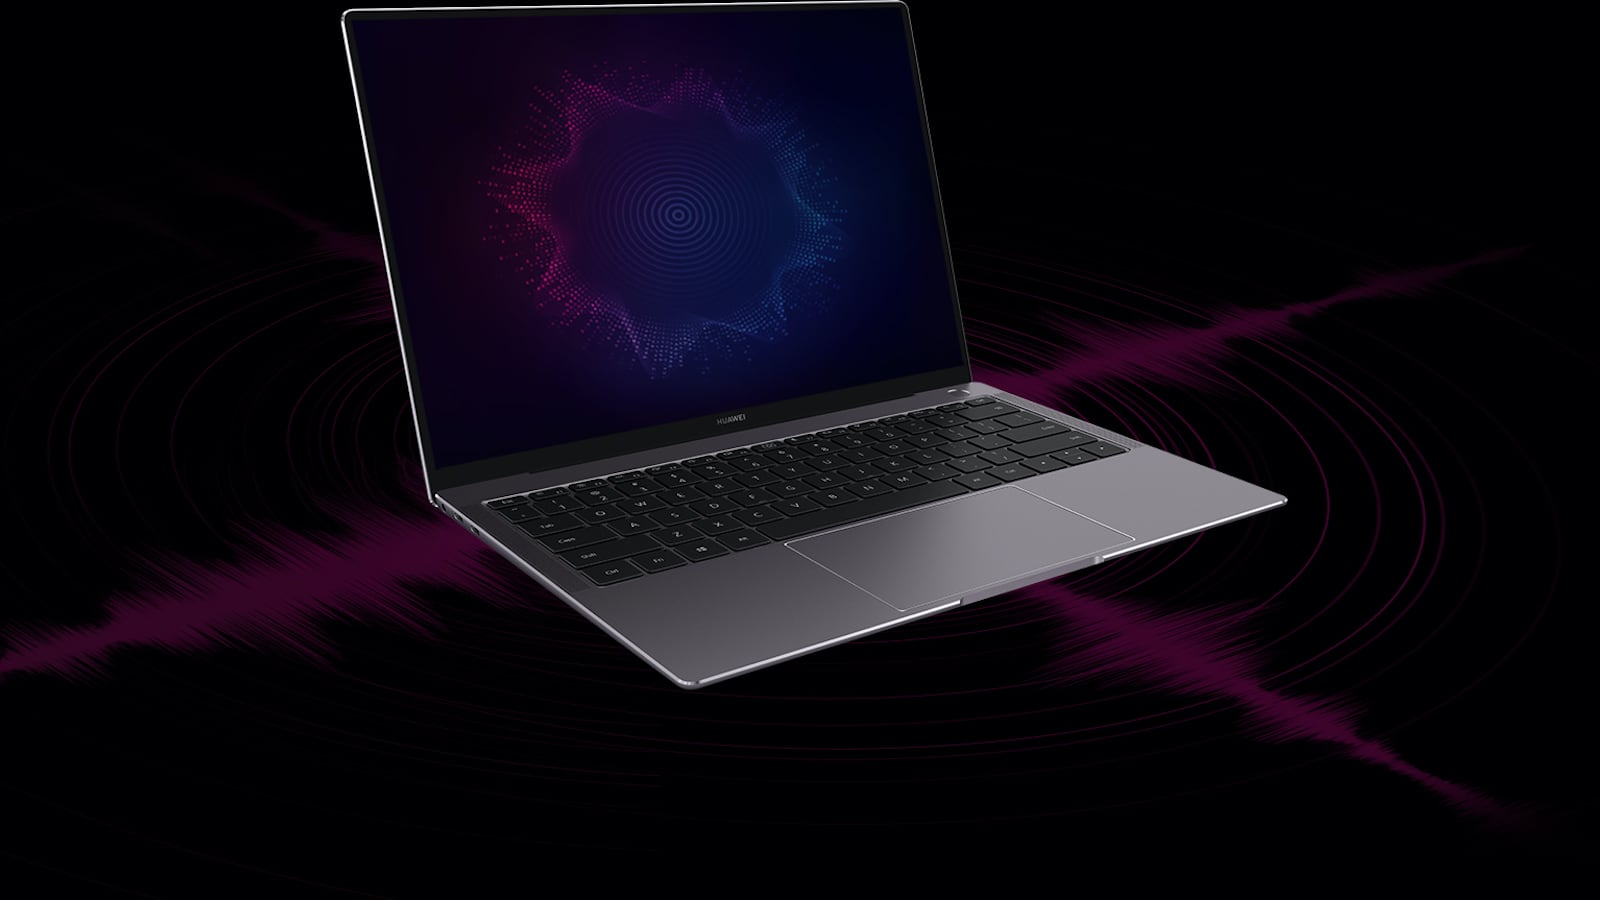 Huawei Matebook X Pro 2020 Edition Touchscreen PC uses 10th-generation Intel processors